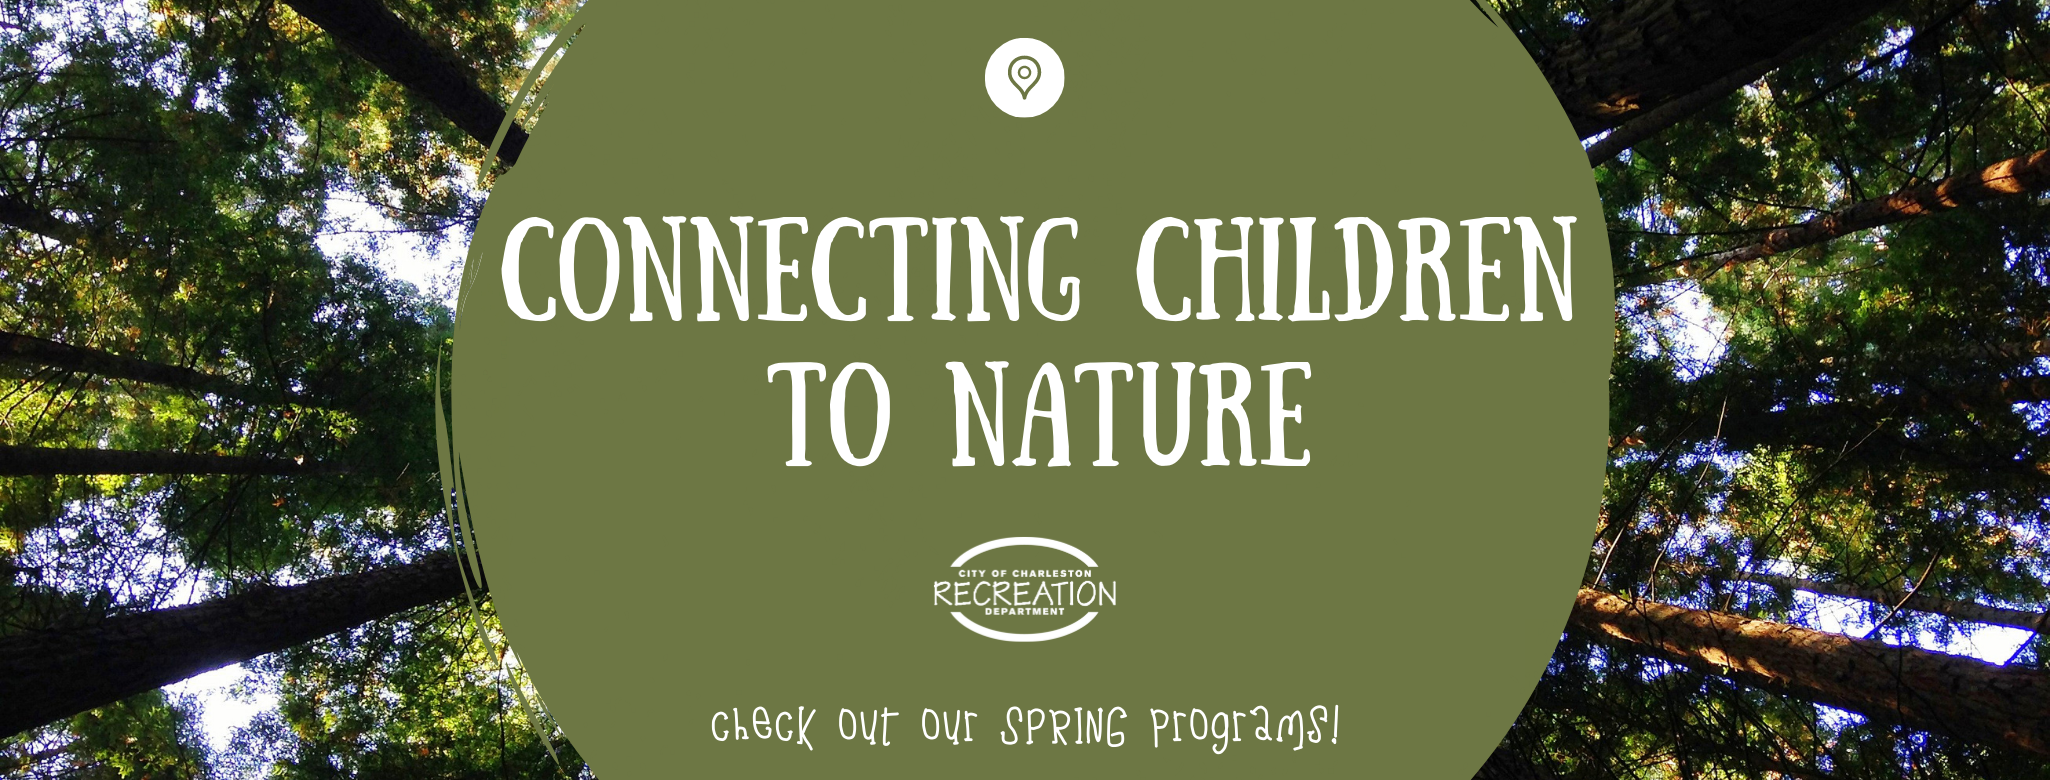 connecting children to nature FB cover